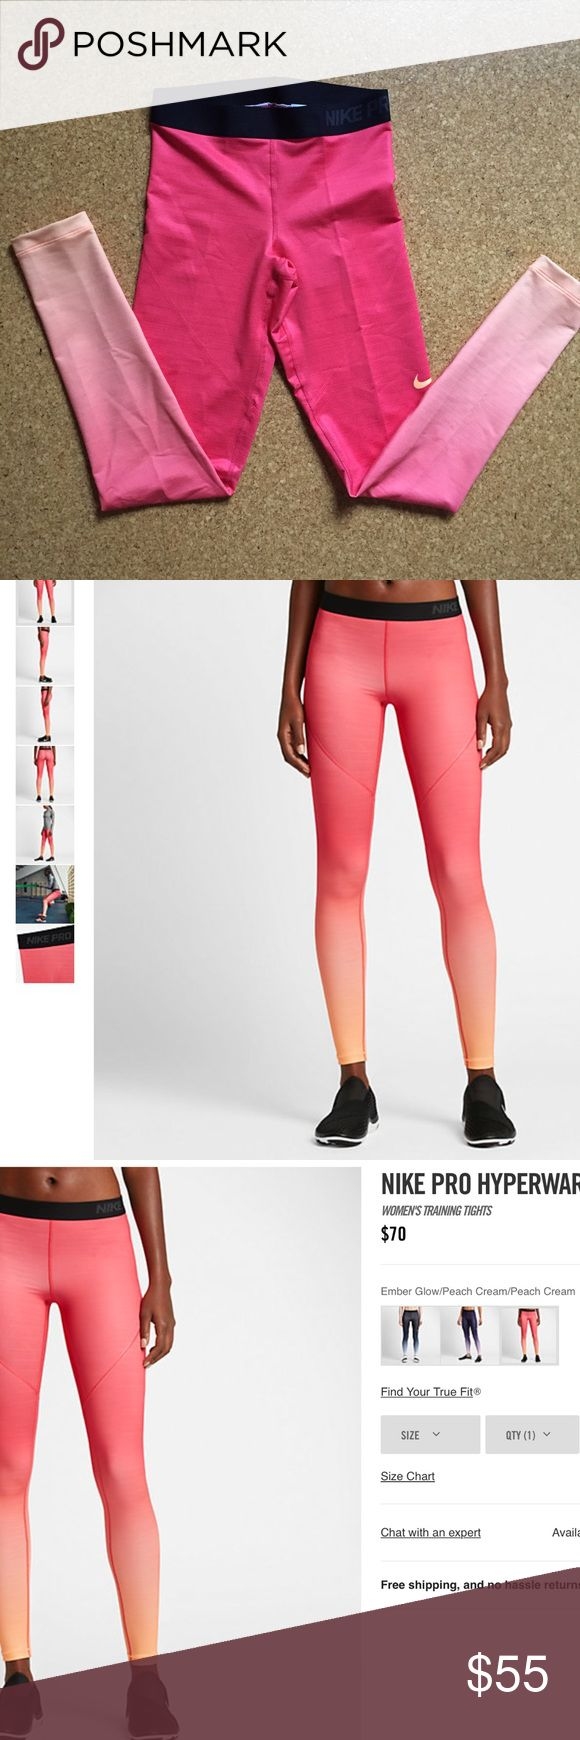 Nike Running Pants Nike pro brand new women's training tights. Ombré orangey coral color. Size S Nike Pants Leggings